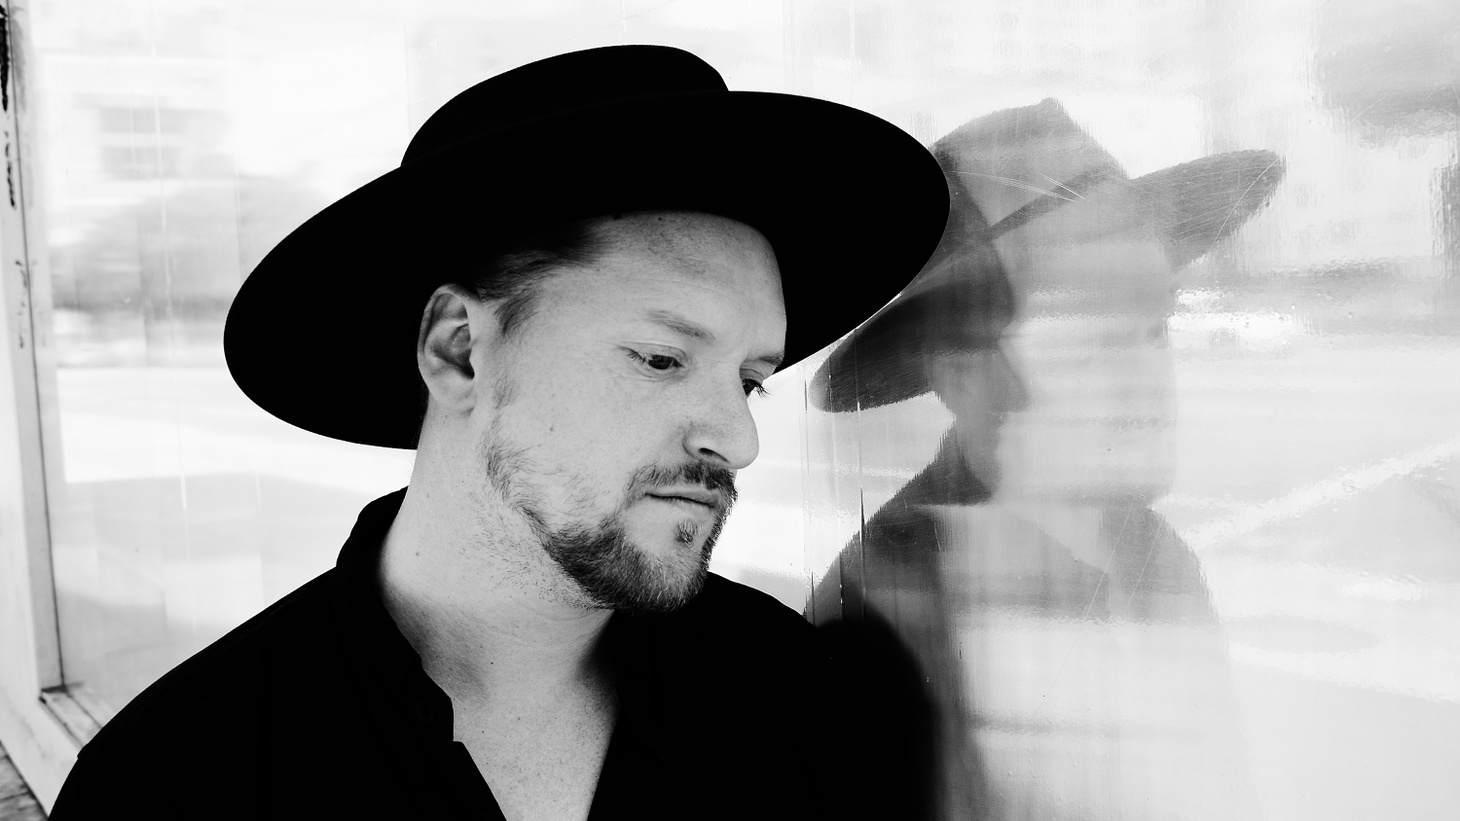 A smooth operator, Sohn produces captivating tracks fusing R&B electronica.